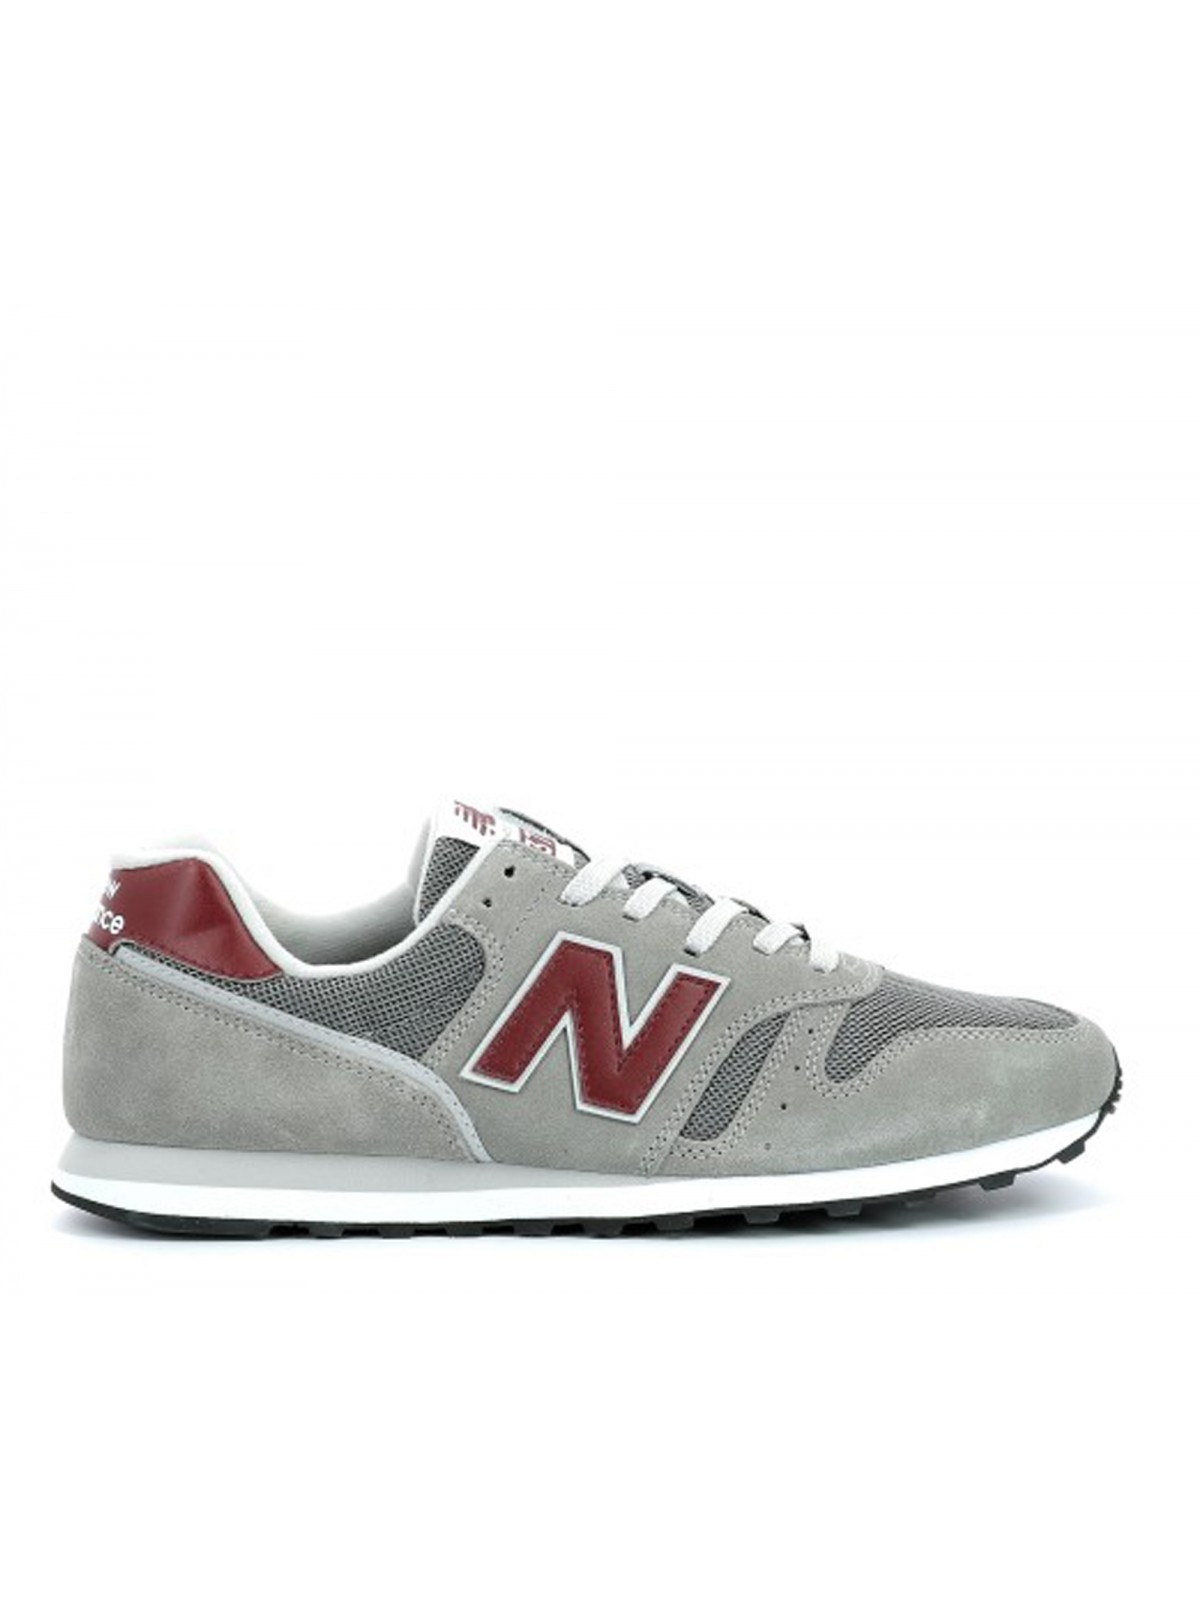 New Balance ML373 gris / bordeaux